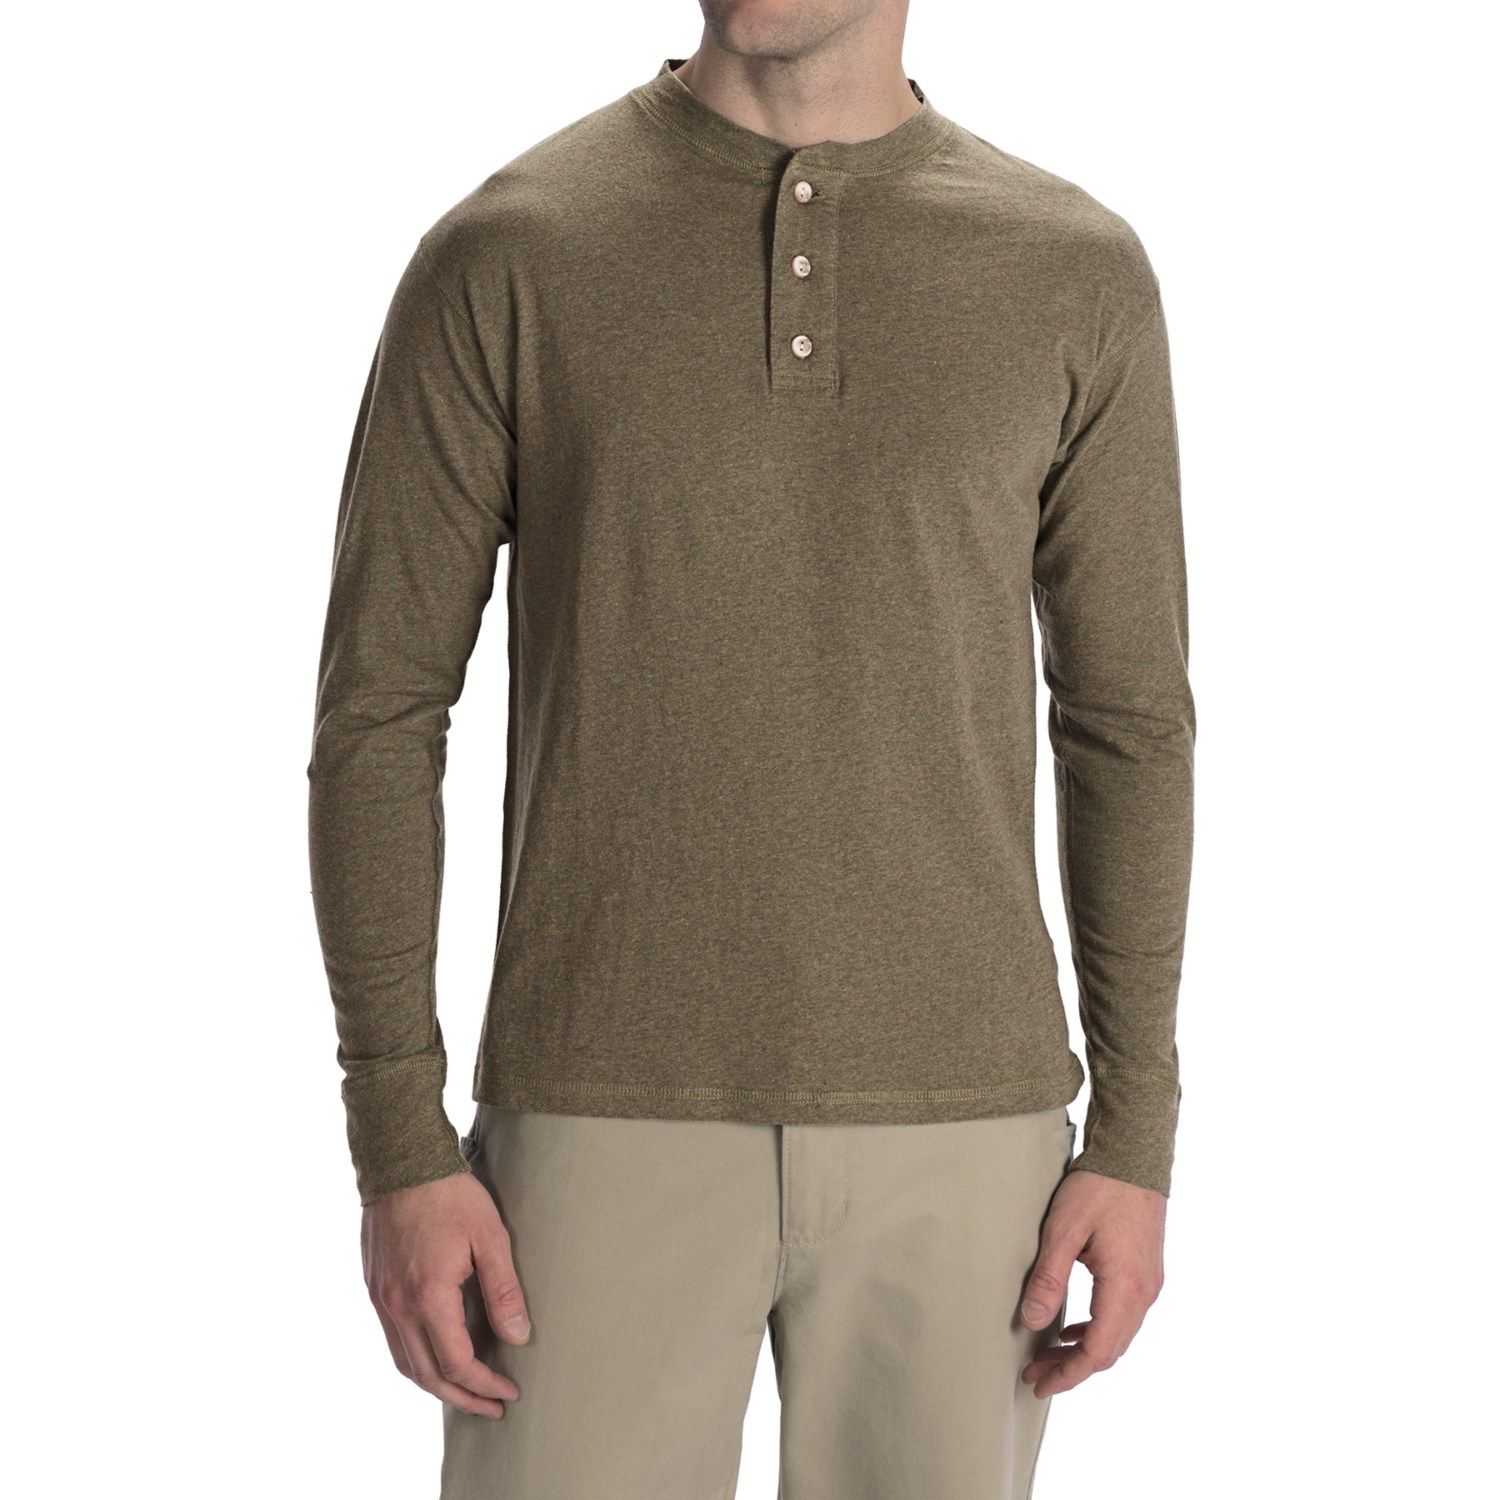 Henley shirts bing images for Long sleeve henley shirts for men